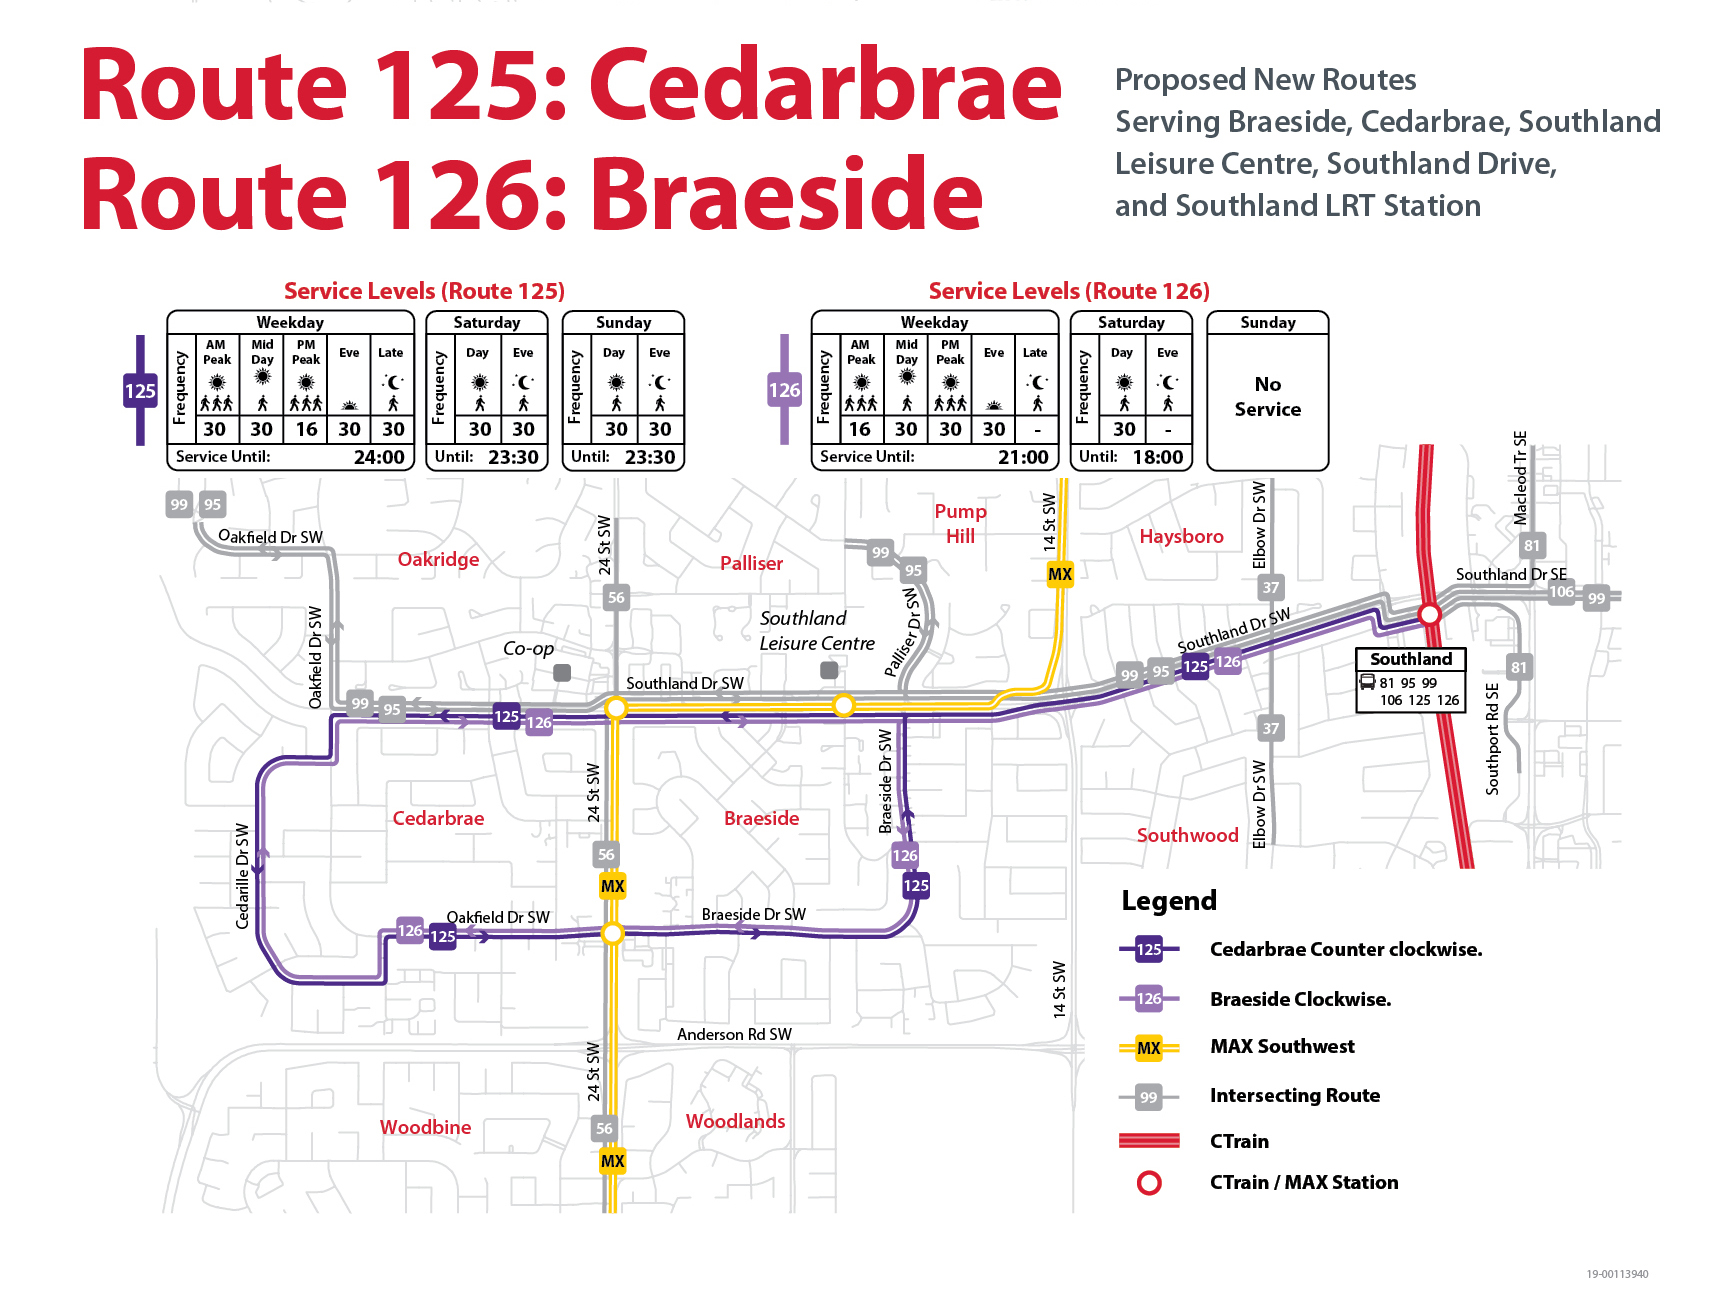 Proposed Changes to Route 125